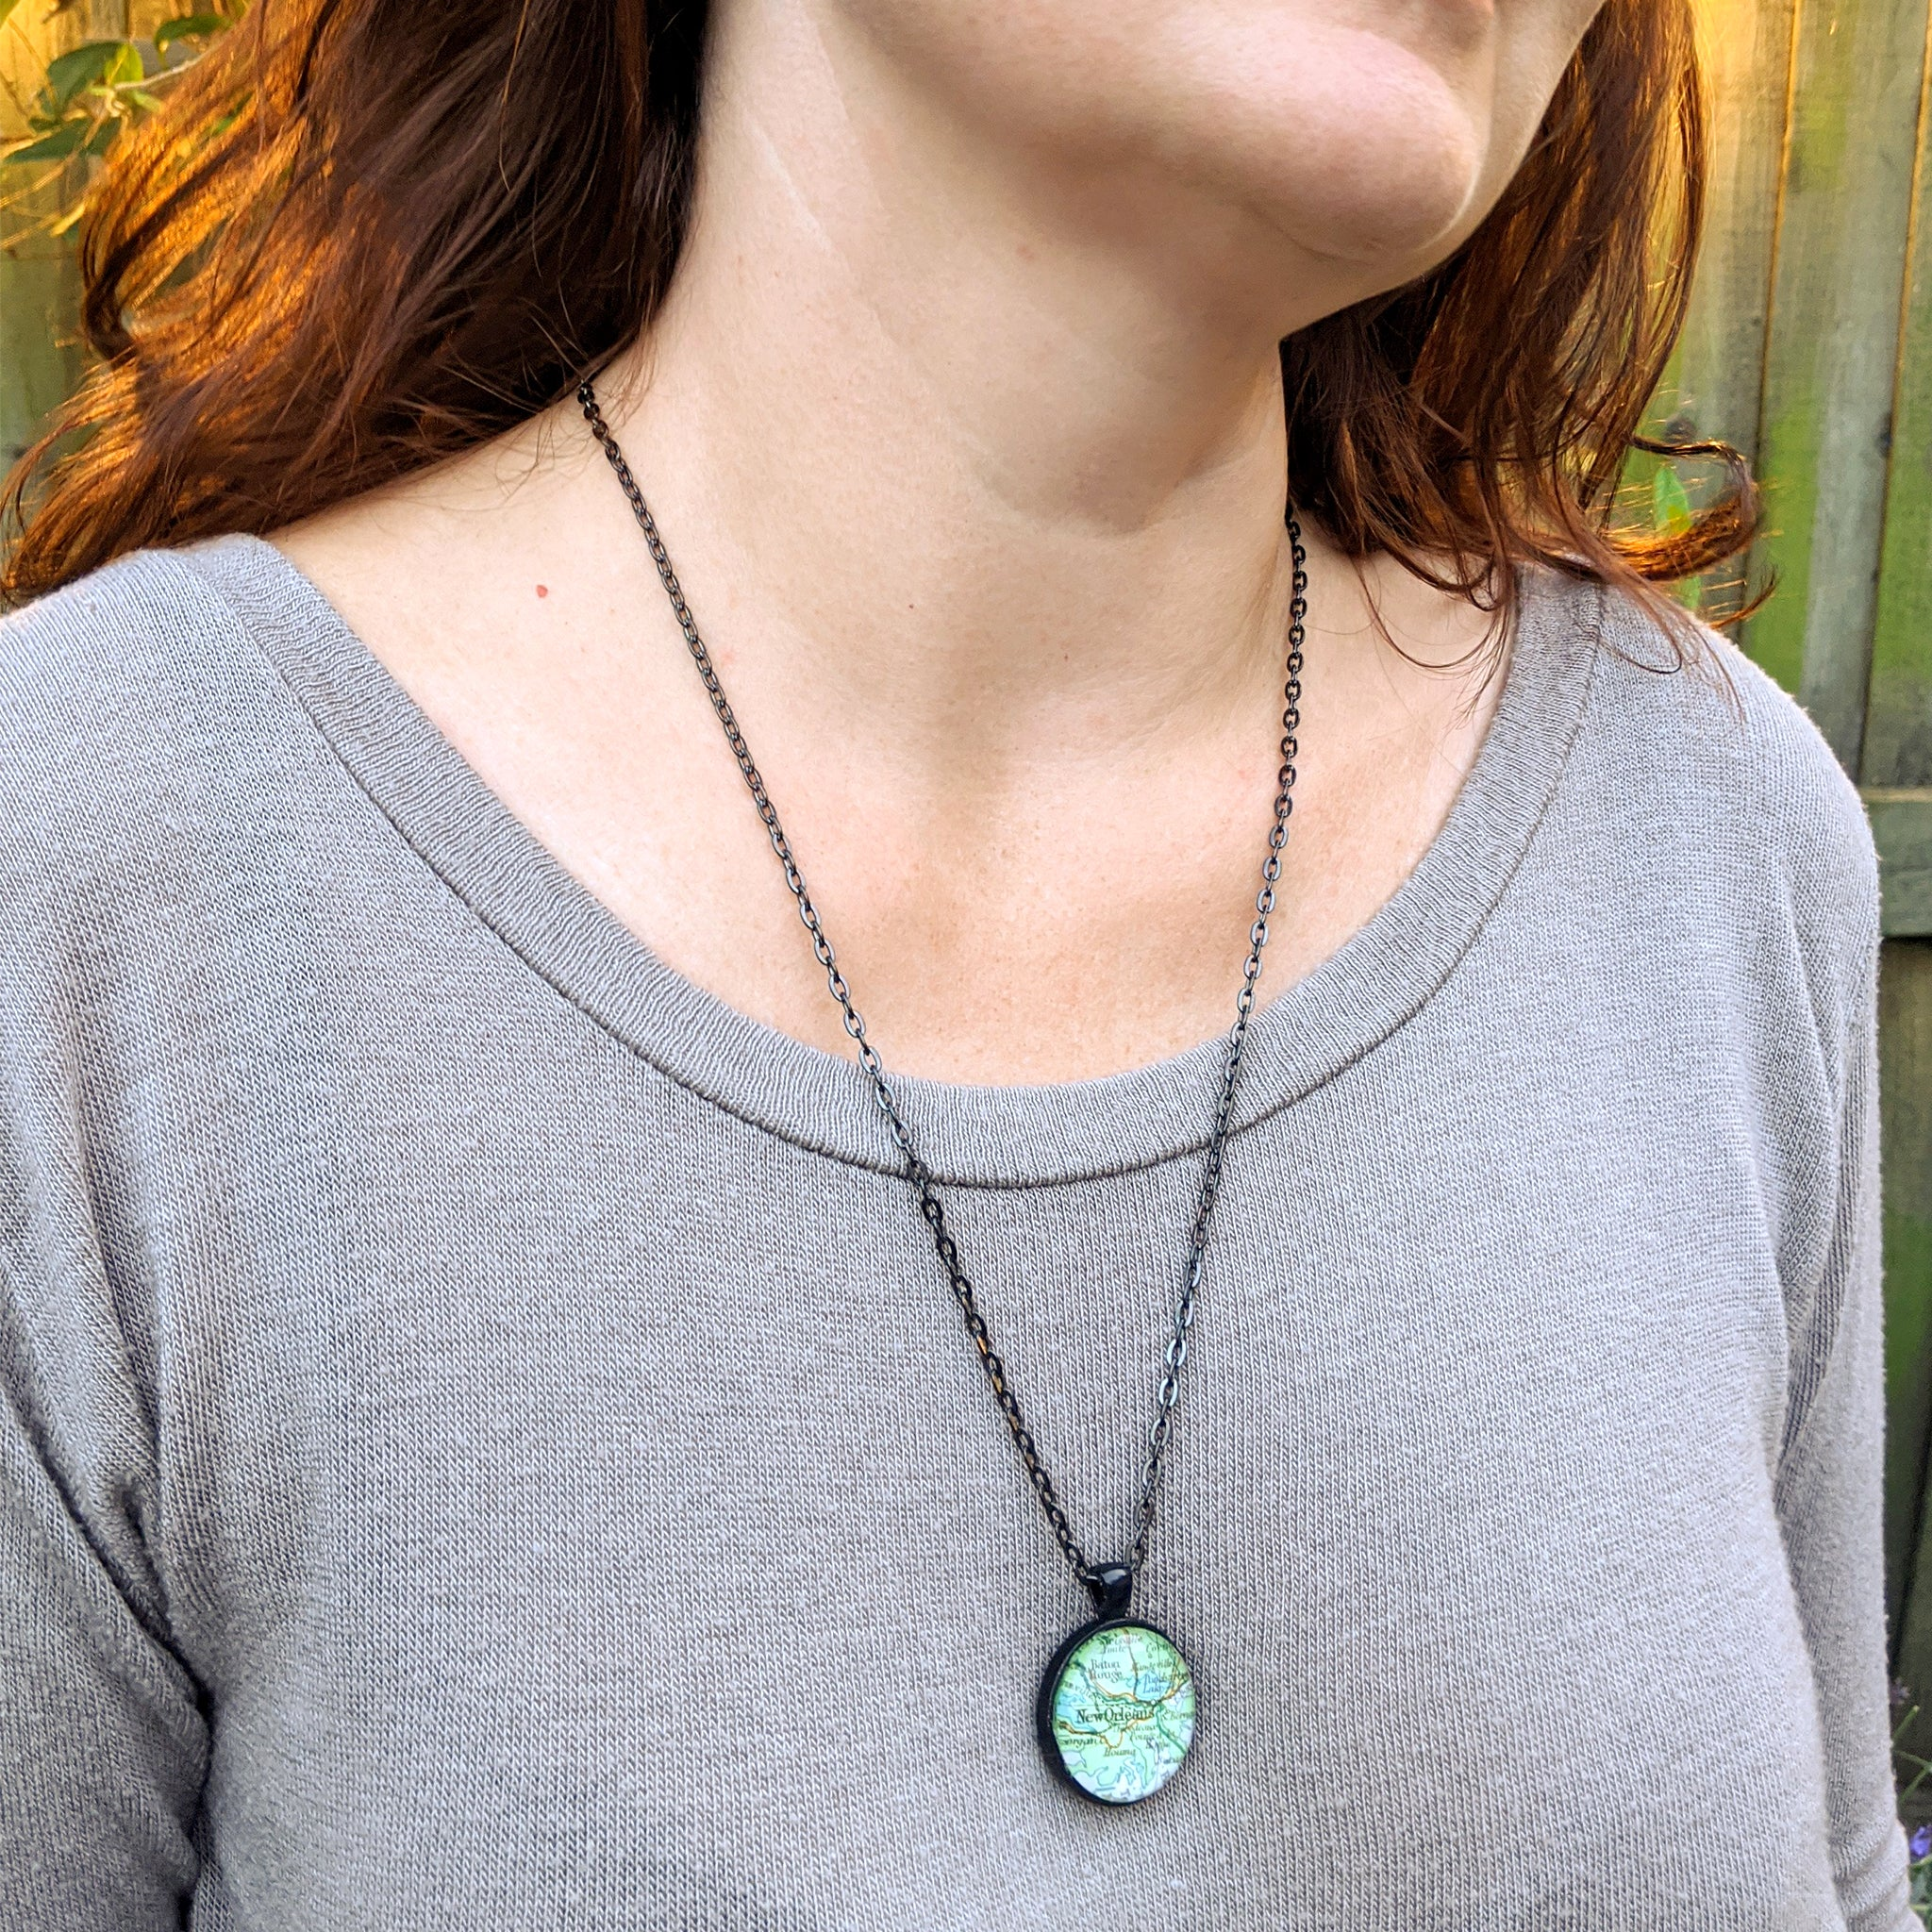 Two sided map necklace in black color worn by a woman